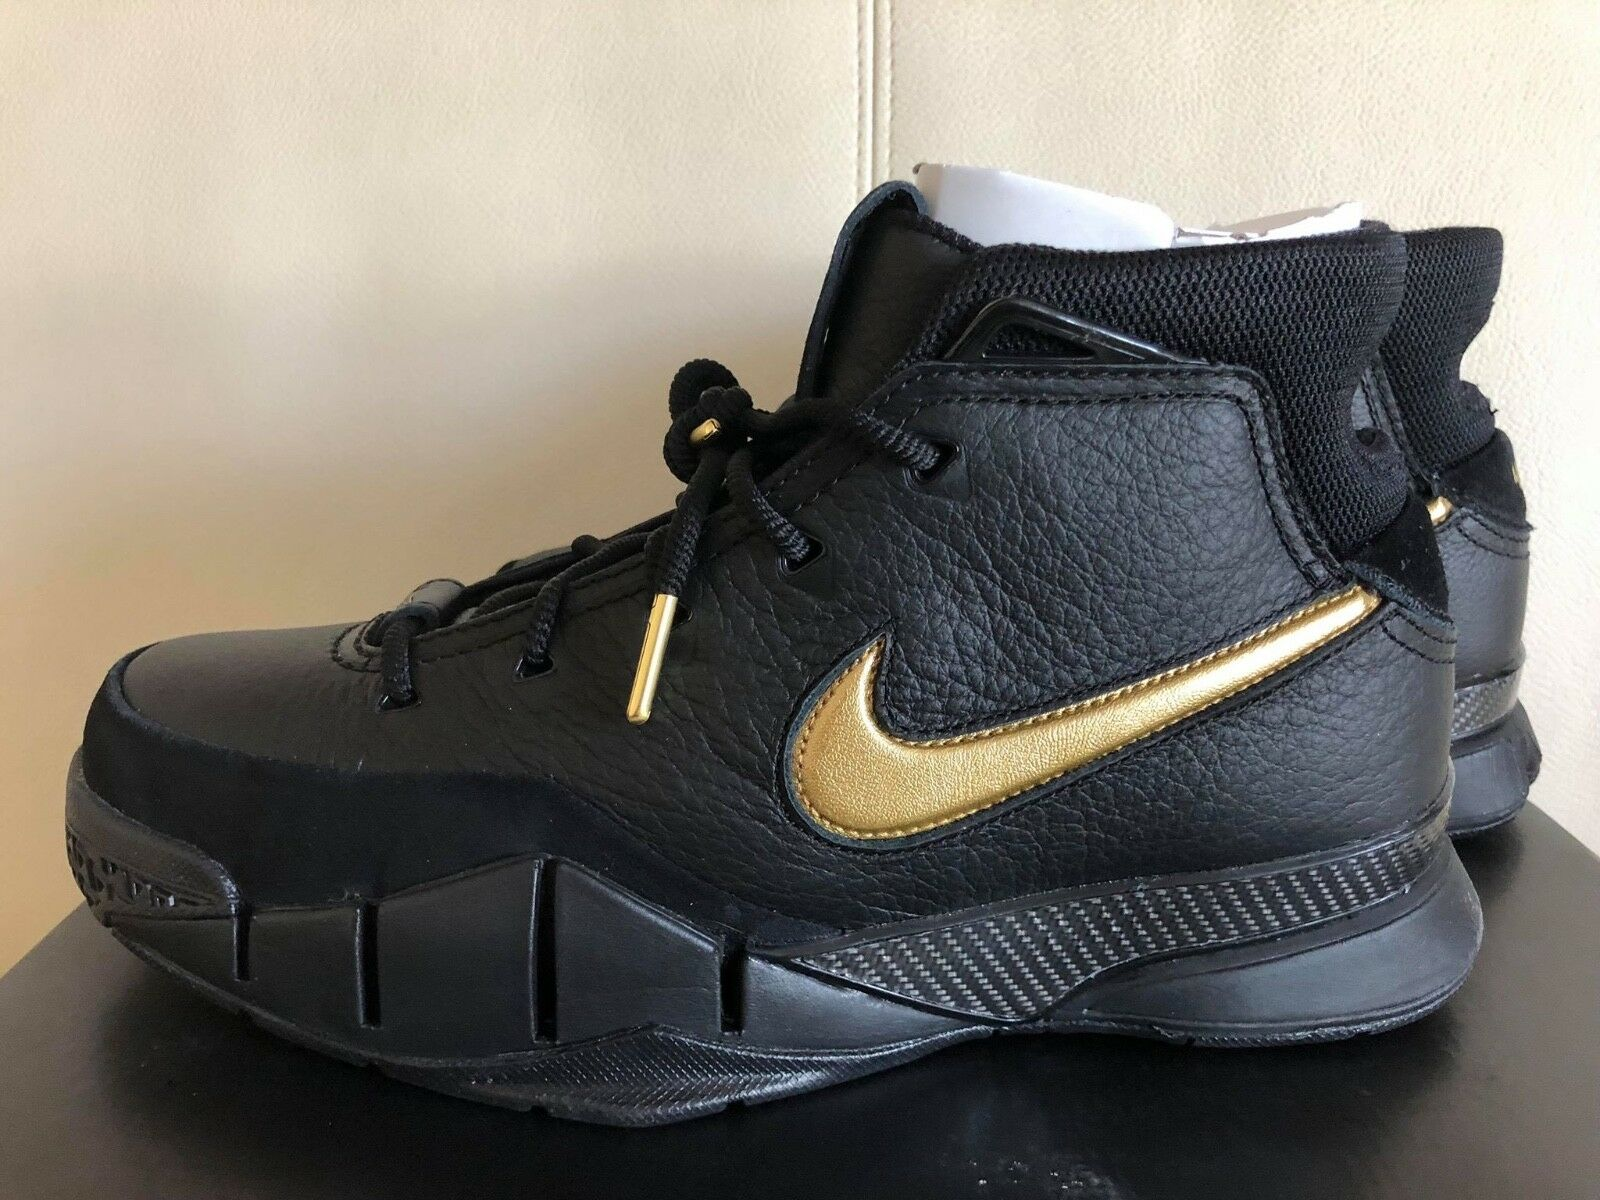 Nike Kobe 1 Protro Mamba Day AQ2728-002 Black Metallic Gold Basketball Shoes NIB